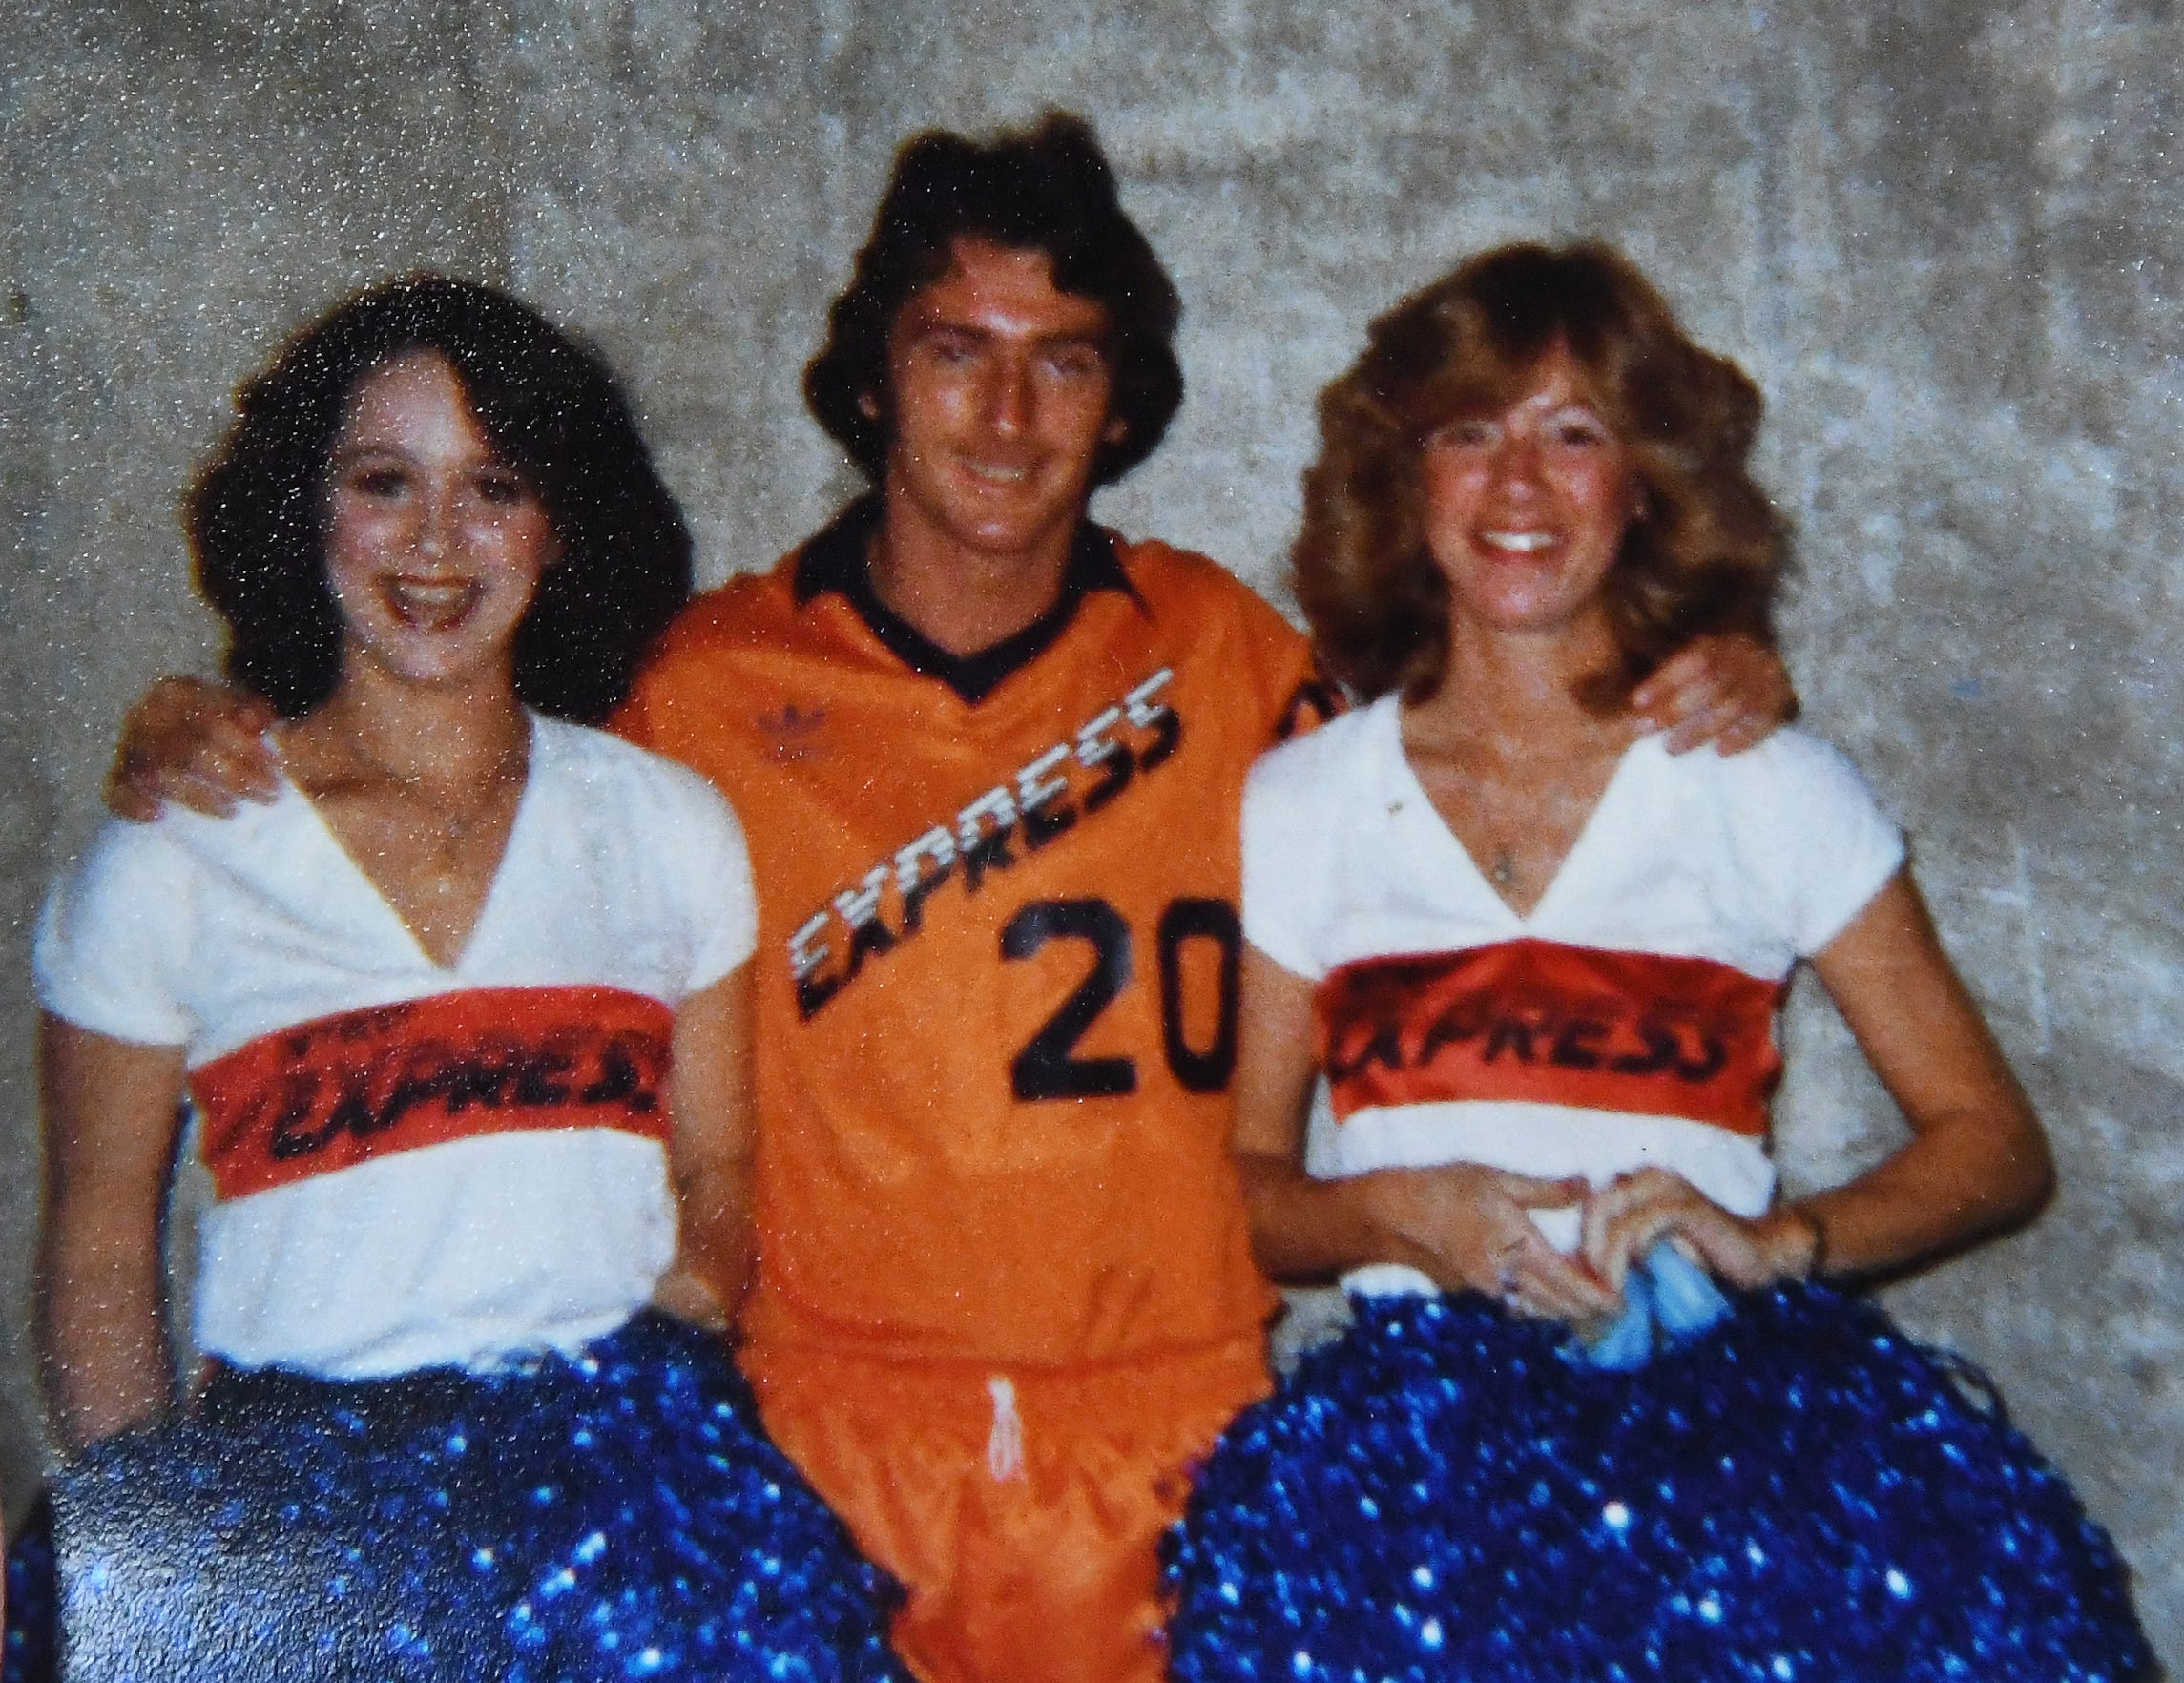 Robin Roberts, left, with Detroit Express soccer player Trevor Francis and Detroit Express Choo Choo Cheerleader Karen Polulak at the Pontiac Silverdome.